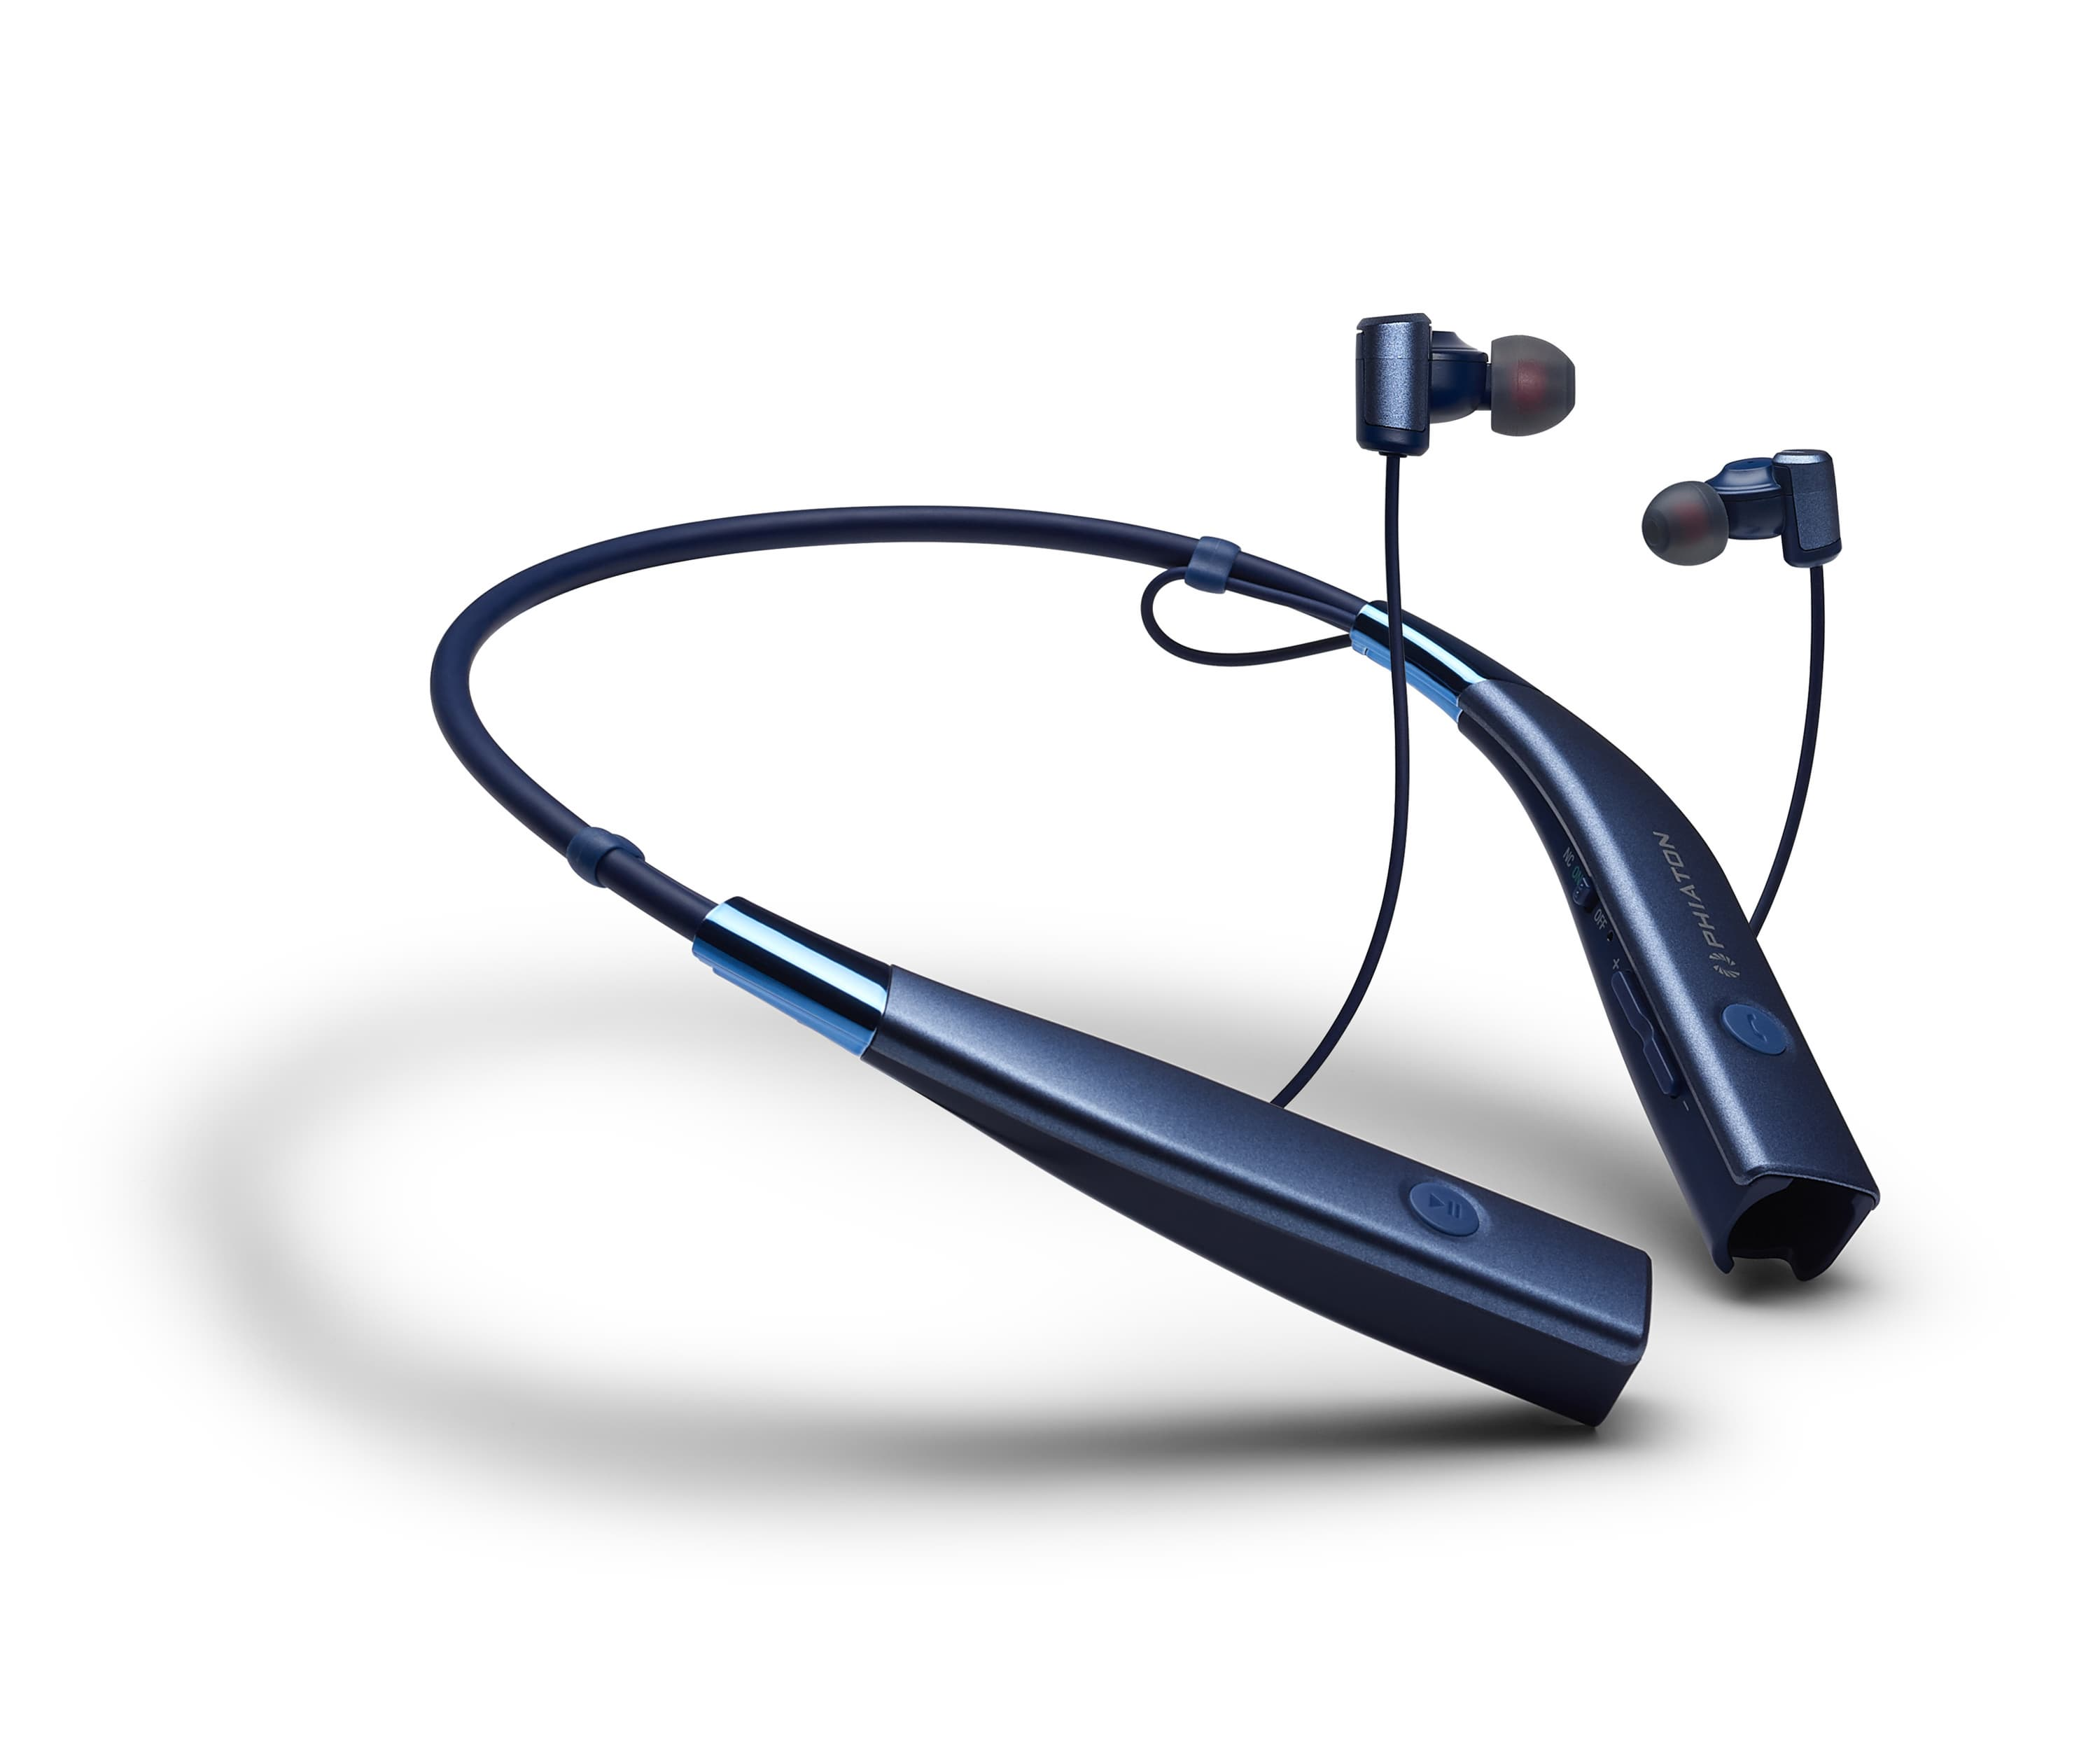 WIRELESS ACTIVE NOISE CANCELLING EARPHONES _BT 100 NC_